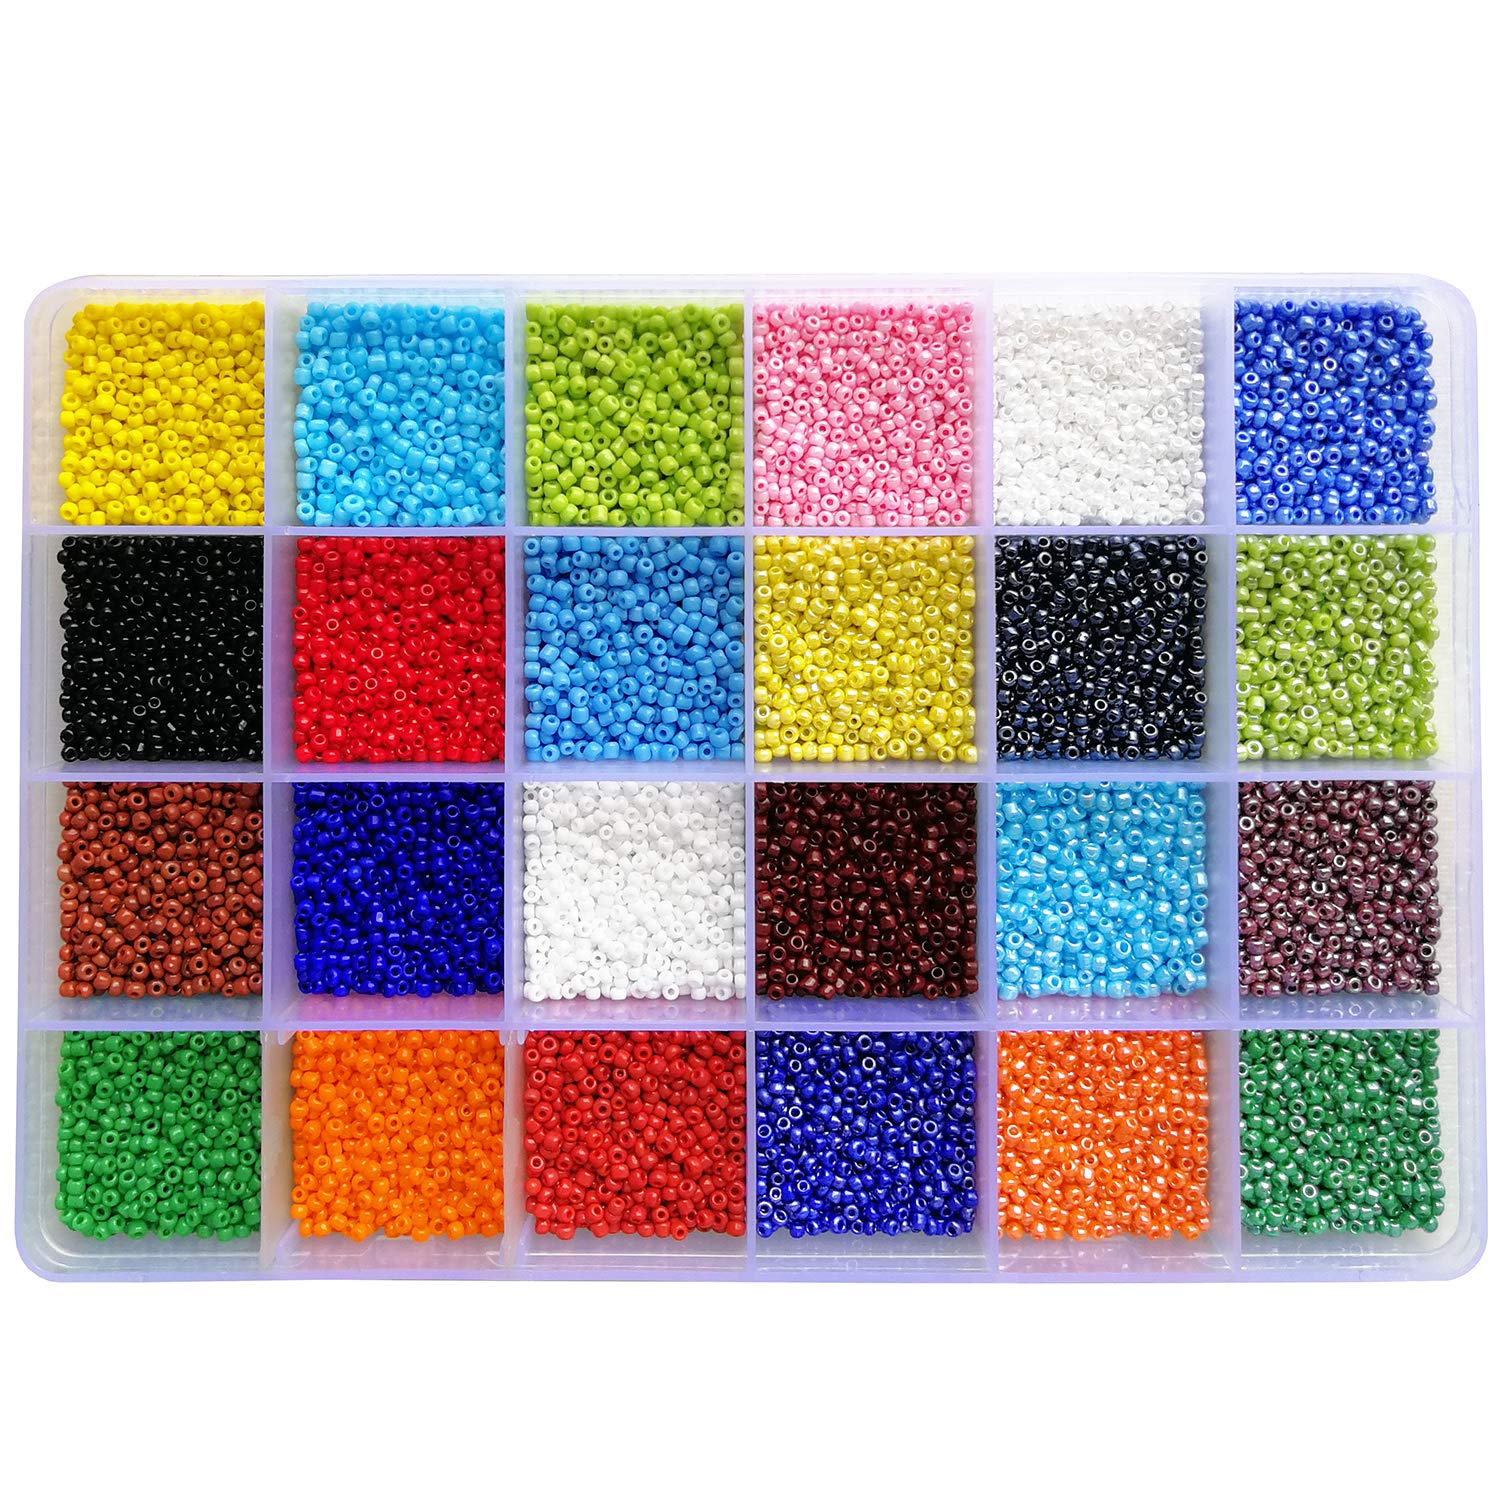 BALABEAD 24000pcs in Box 24 Multicolor Assortment 12/0 Glass Seed Beads Opaque Colors Seed Beads for for Jewelry Making, Size 2mm Beads, Hole 0.6-0.8mm (1000pcs/Color, 24 Colors) by BALABEAD